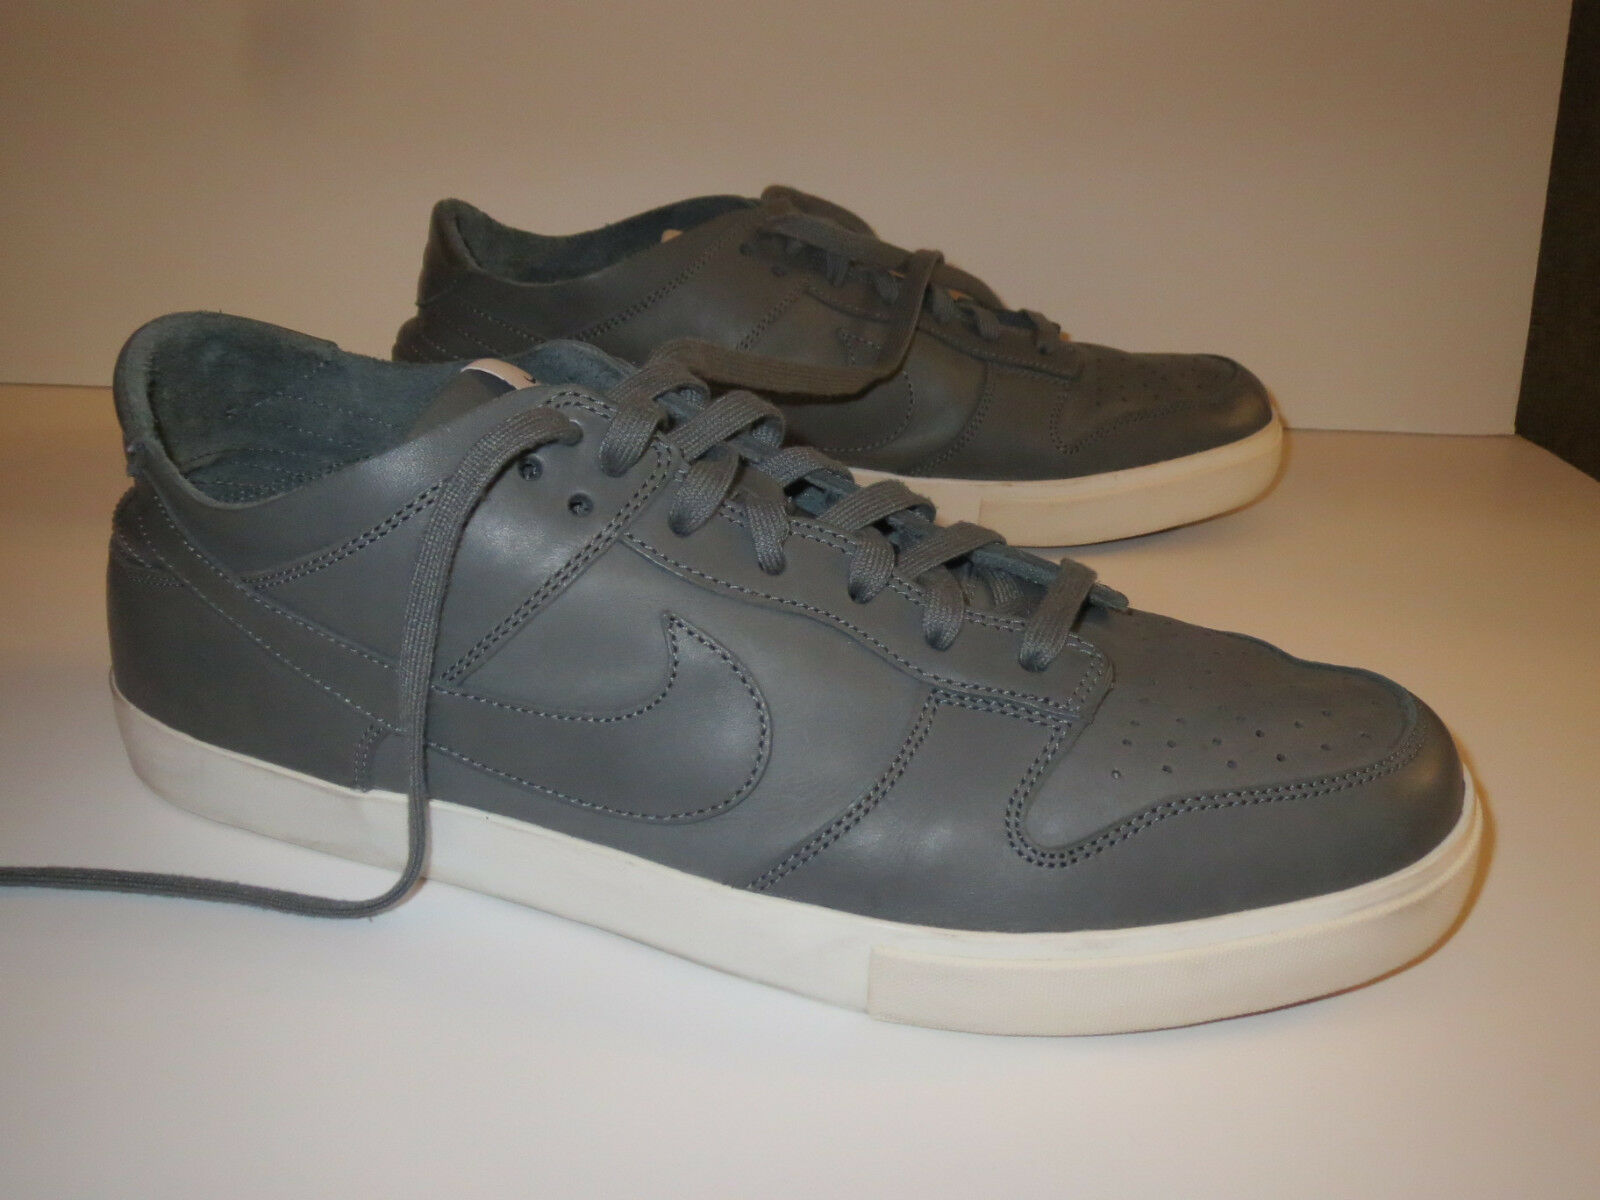 ee232d3c8ded1 Nike Sneakers Premium Mens Size 15 iD Dunk Gray Leather Leather Leather  Deconstruct Low Top Rare